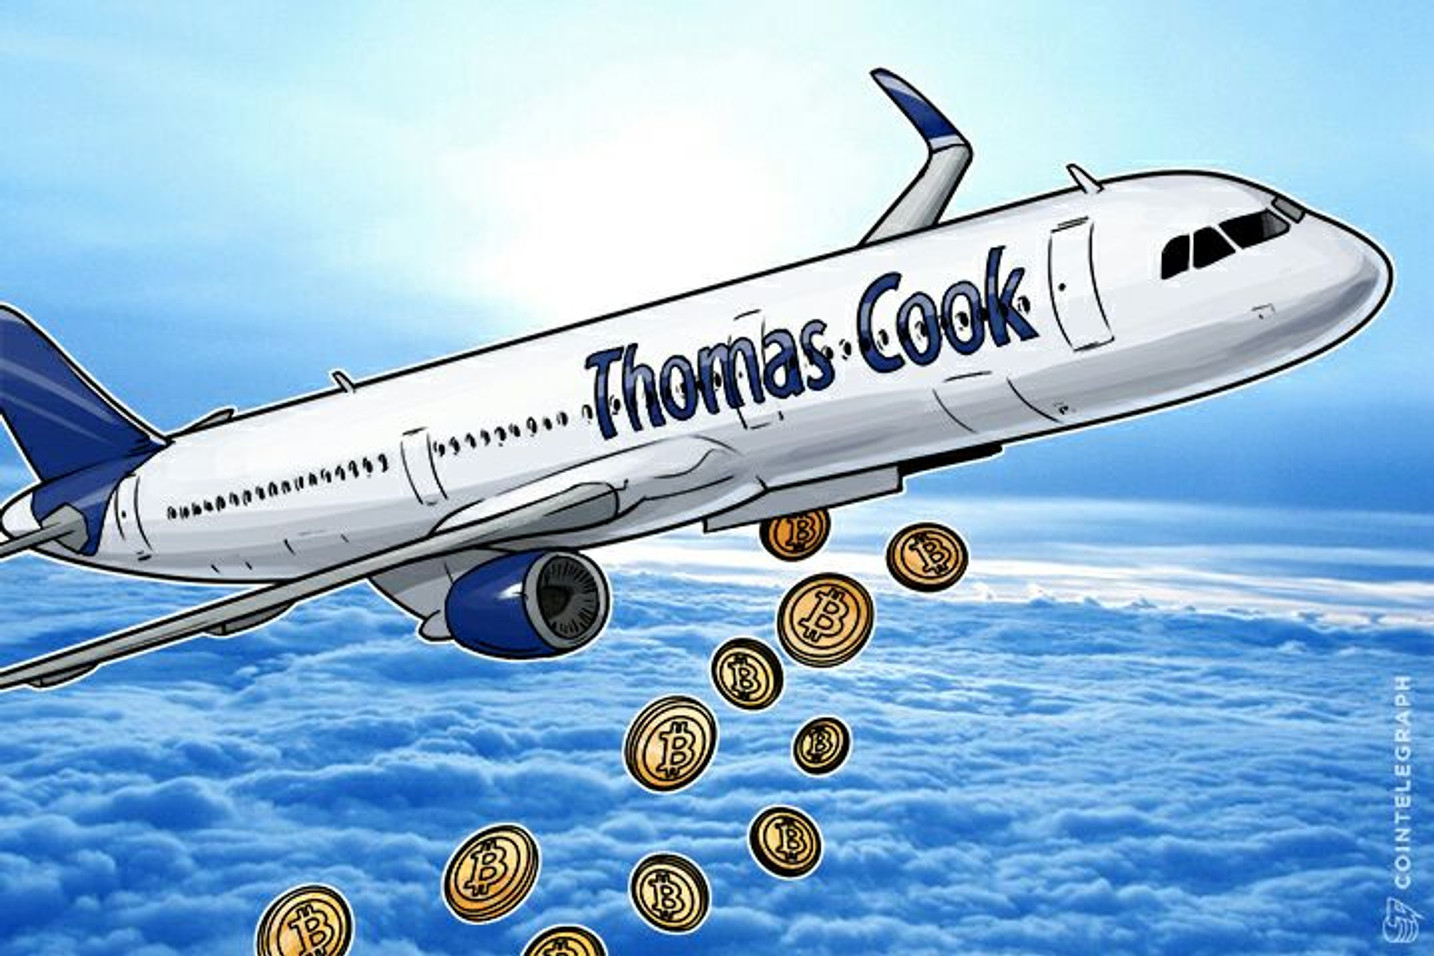 As Thomas Cook Suspends FX in UK, Bitcoin Best Choice For Individuals